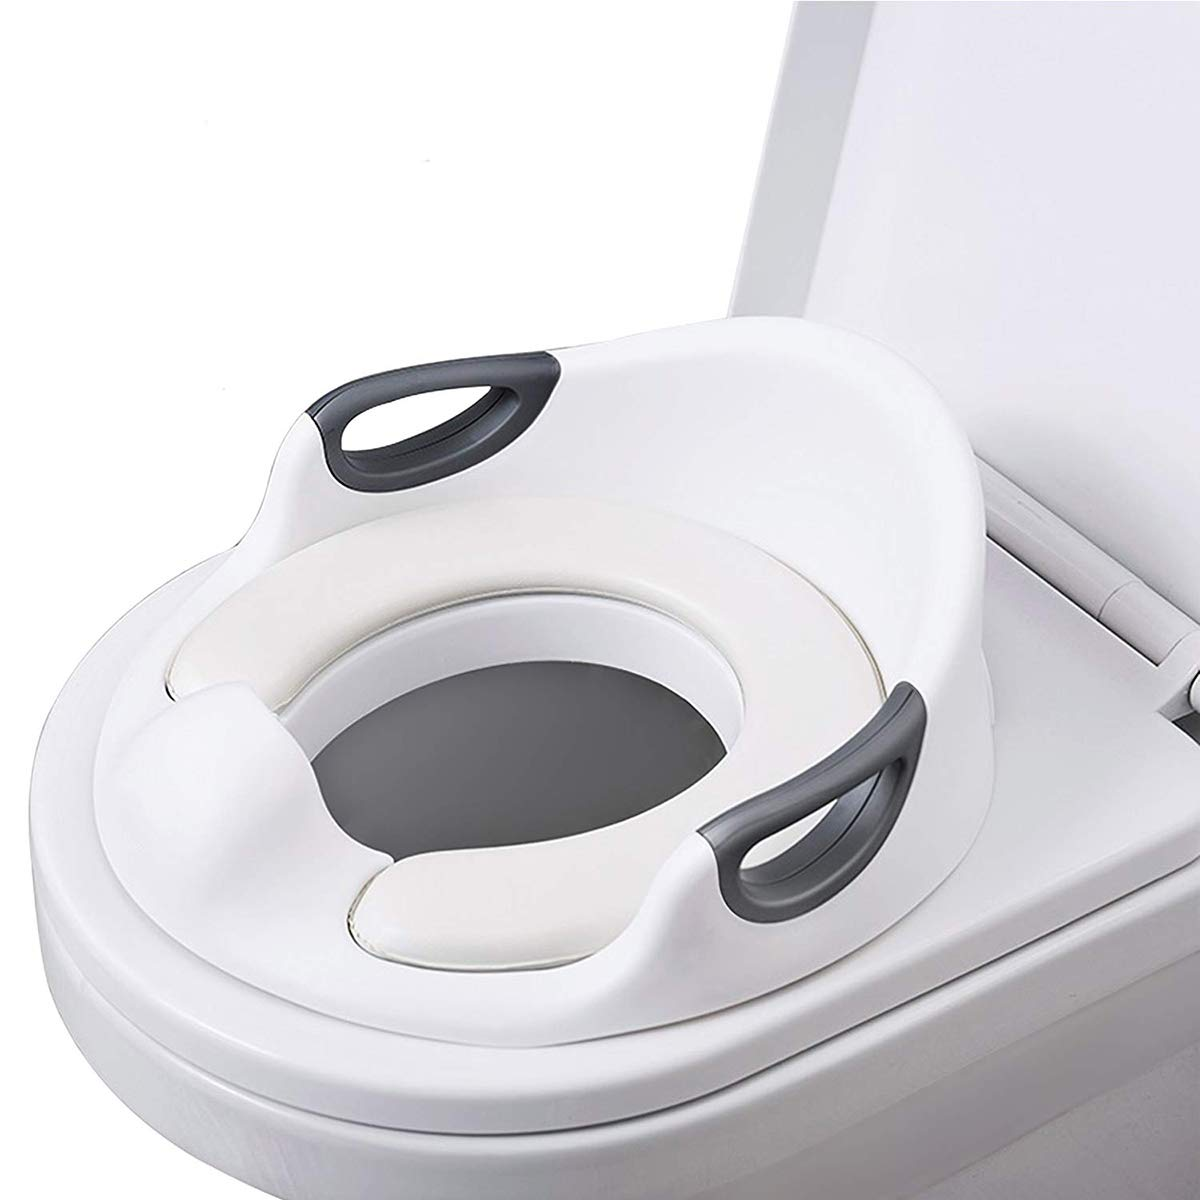 Potty Training Toilet Seat for Kids Toddlers Toilet Trainer Ring for Boys or Girls with Splash Guard Handles and Backrest, Apply to Round and Oval Toilets (White) NicoleKayLan